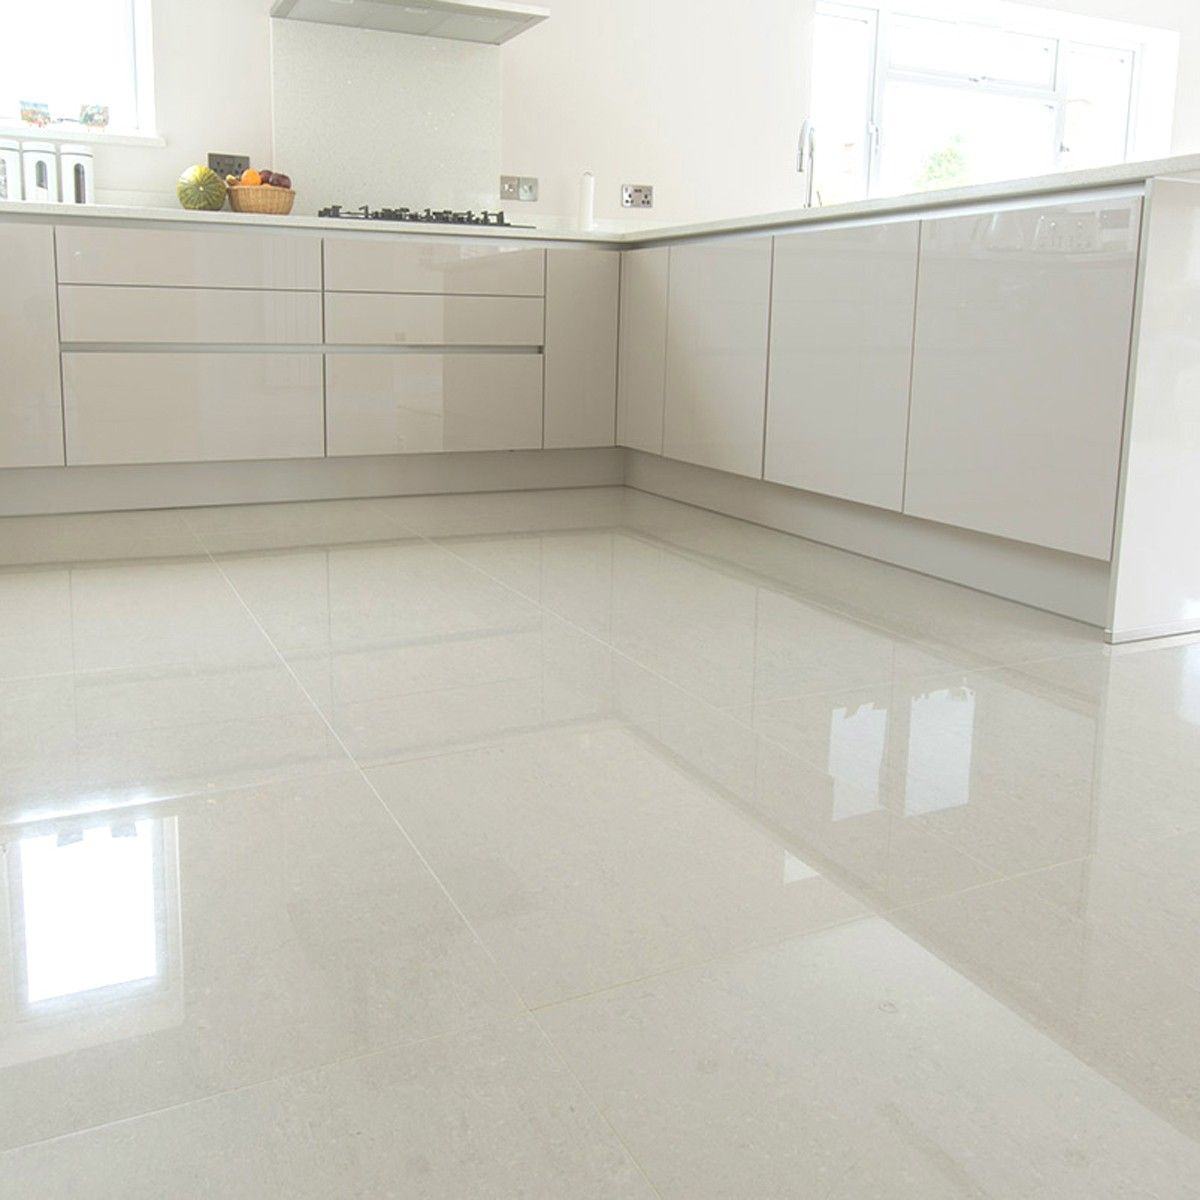 super polished ivory porcelain floor tile is a very contemporary ivory tile does not require sealing - Large White Kitchen Floor Tiles